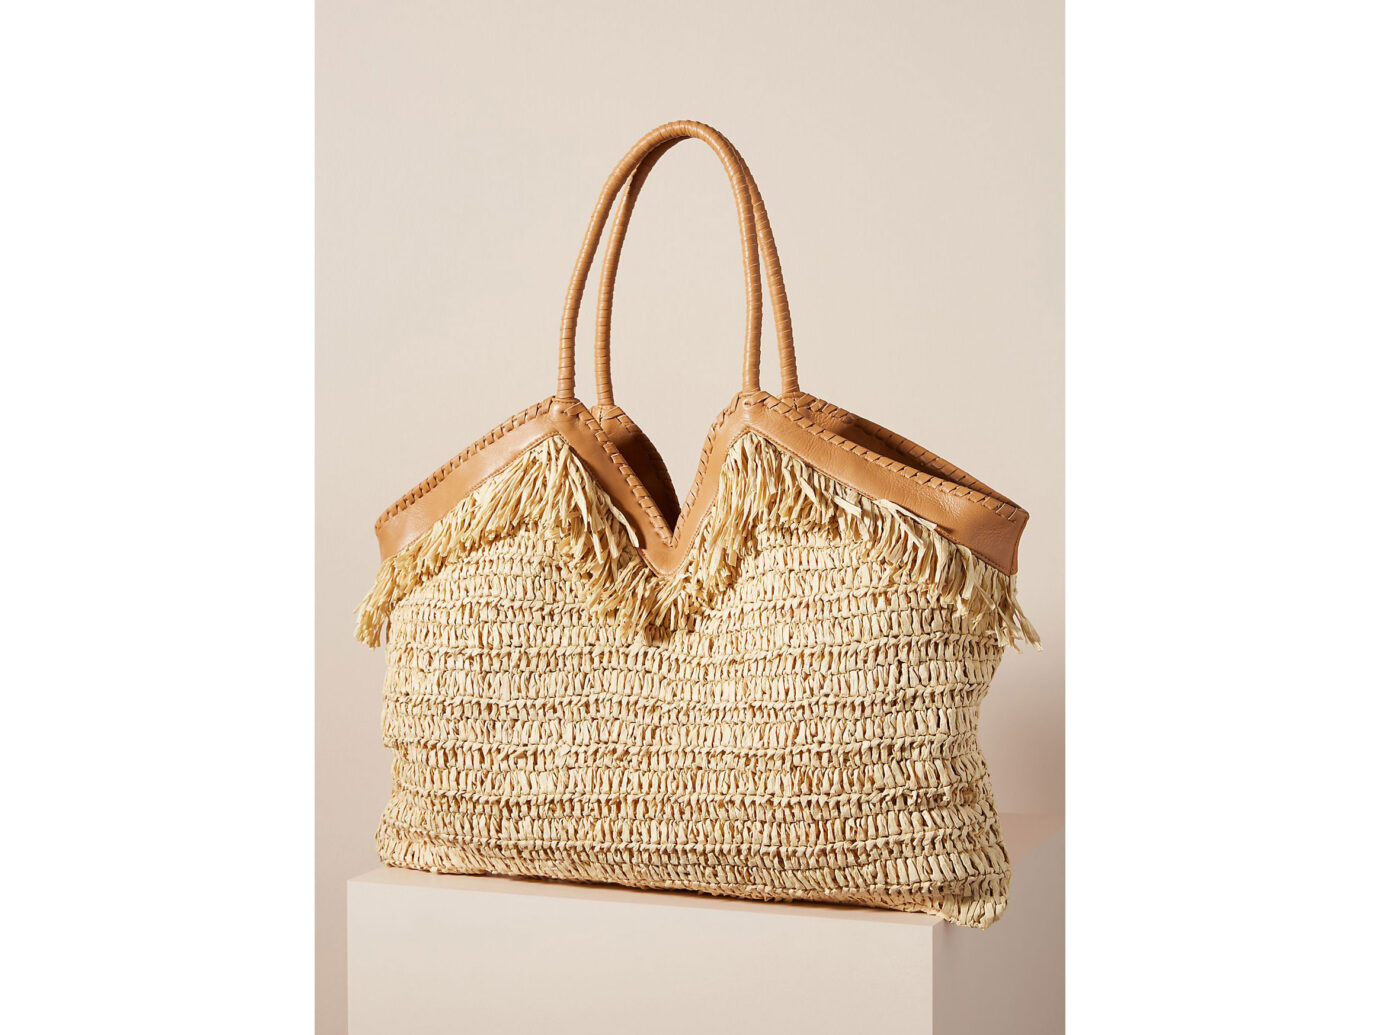 Anthropologie straw beach bag